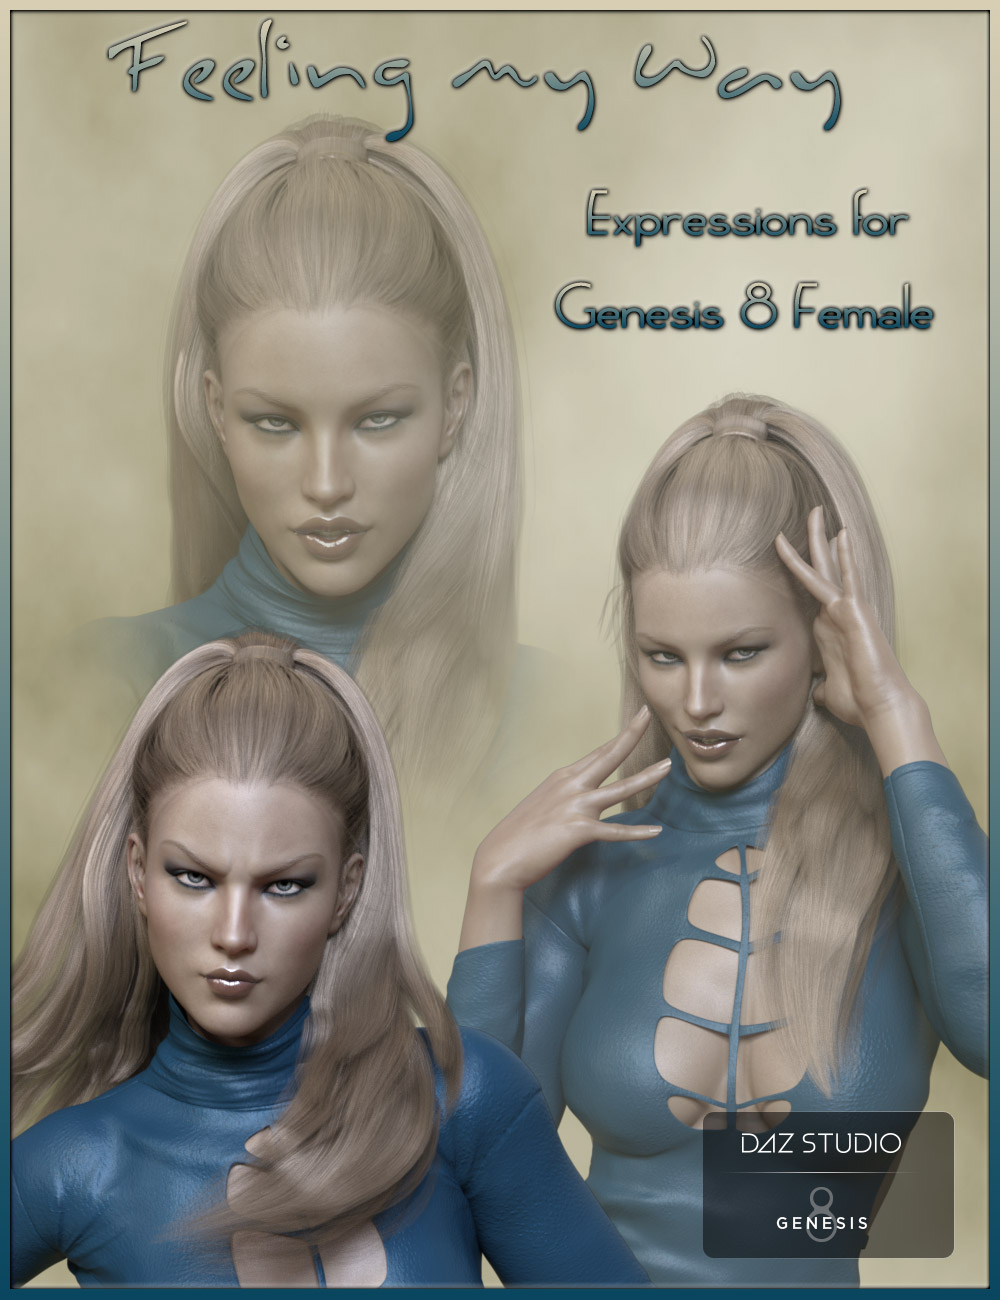 Feeling My Way - Expressions for Genesis 8 Female by: ilona, 3D Models by Daz 3D